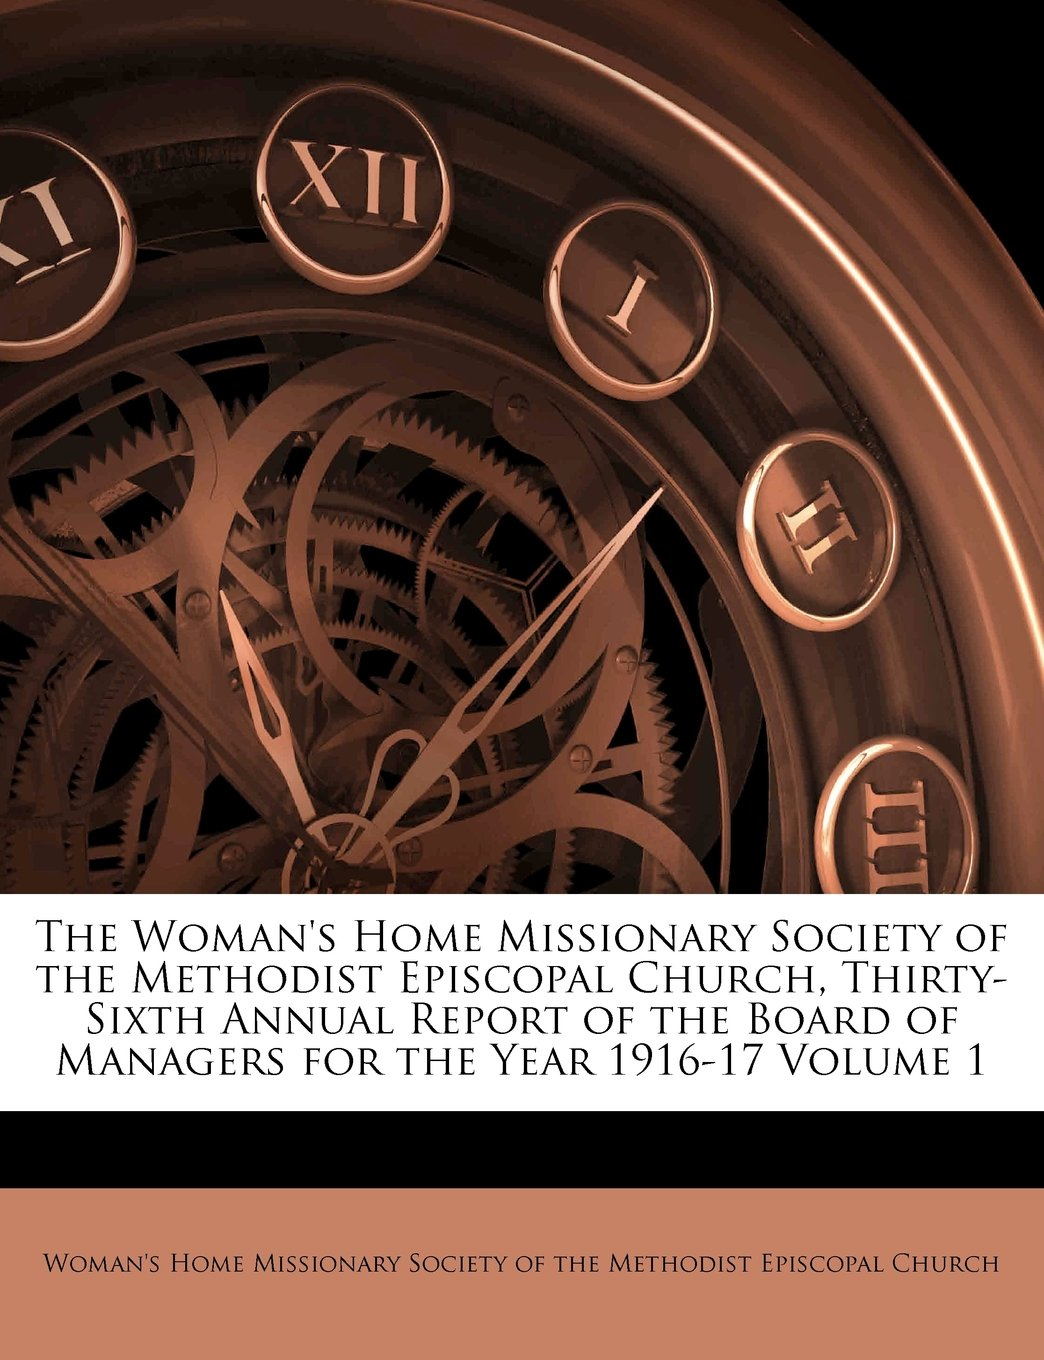 Download The Woman's Home Missionary Society of the Methodist Episcopal Church, Thirty-Sixth Annual Report of the Board of Managers for the Year 1916-17 Volume 1 PDF